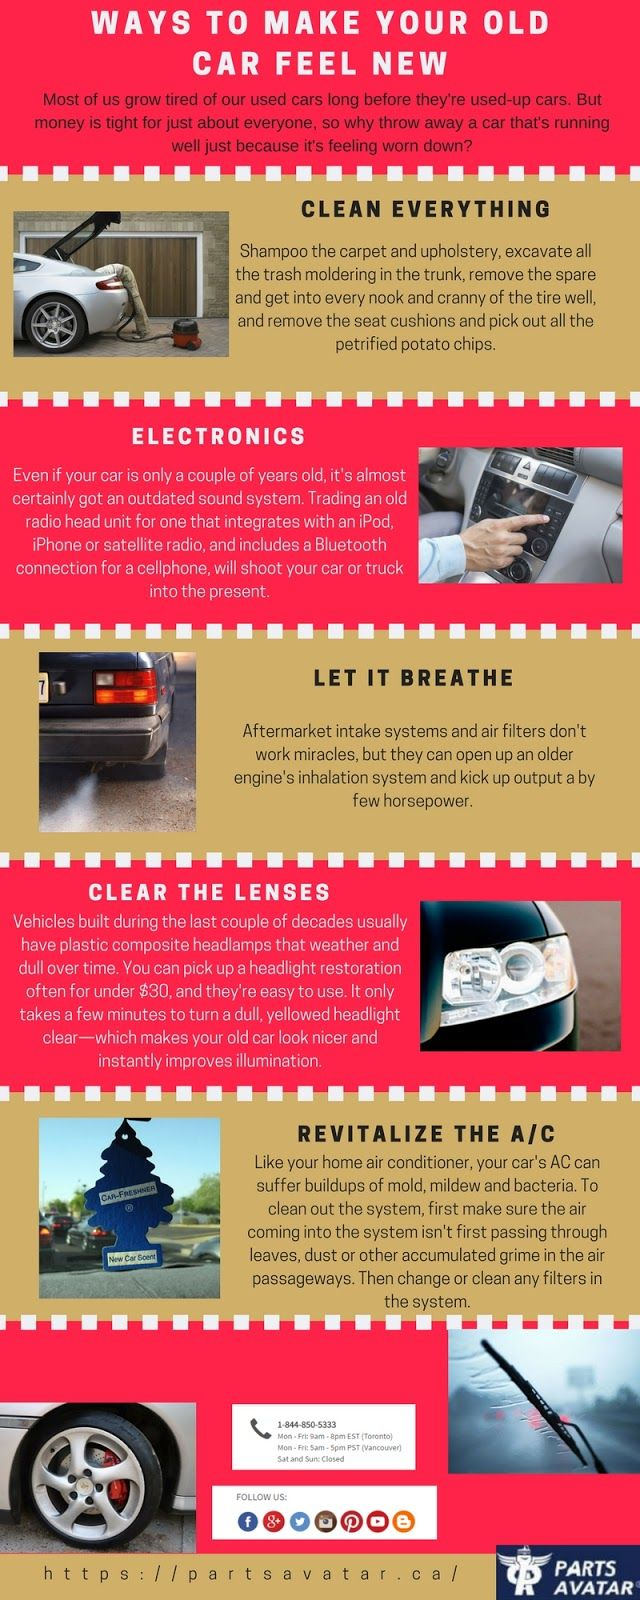 Is your car too old? Want to make it a new one? Buy best quality ...